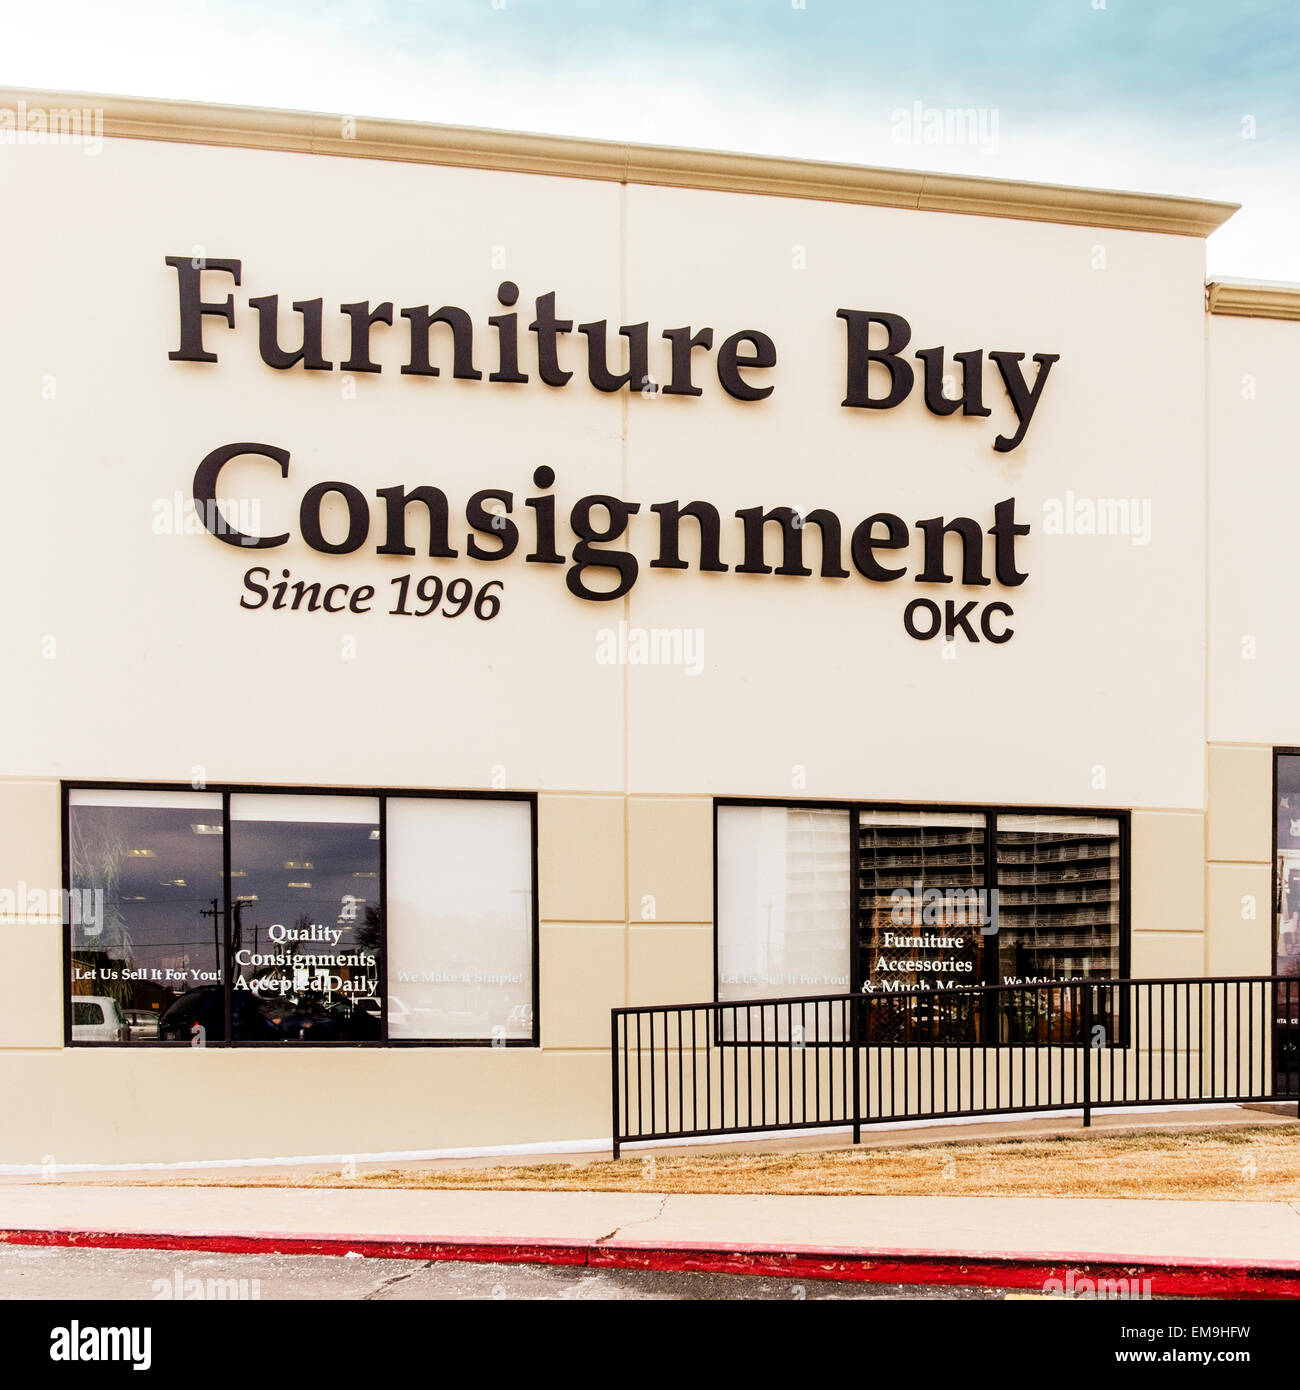 The Exterior Of Furniture Buy Consignment Store In Oklahoma City, Oklahoma,  USA.